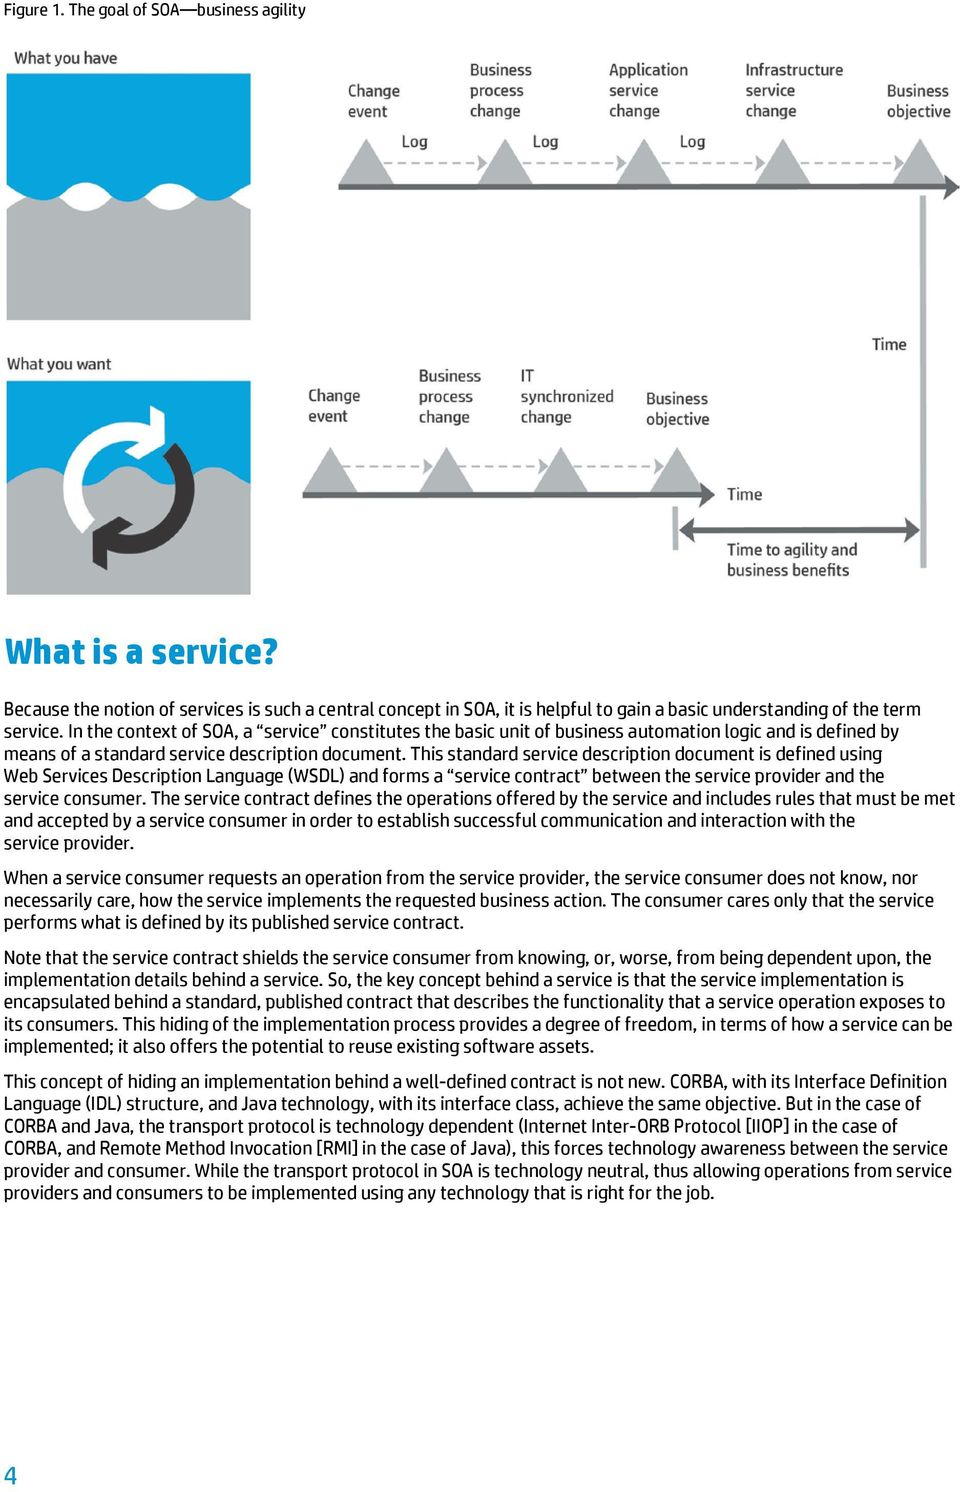 This standard service description document is defined using Web Services Description Language (WSDL) and forms a service contract between the service provider and the service consumer.